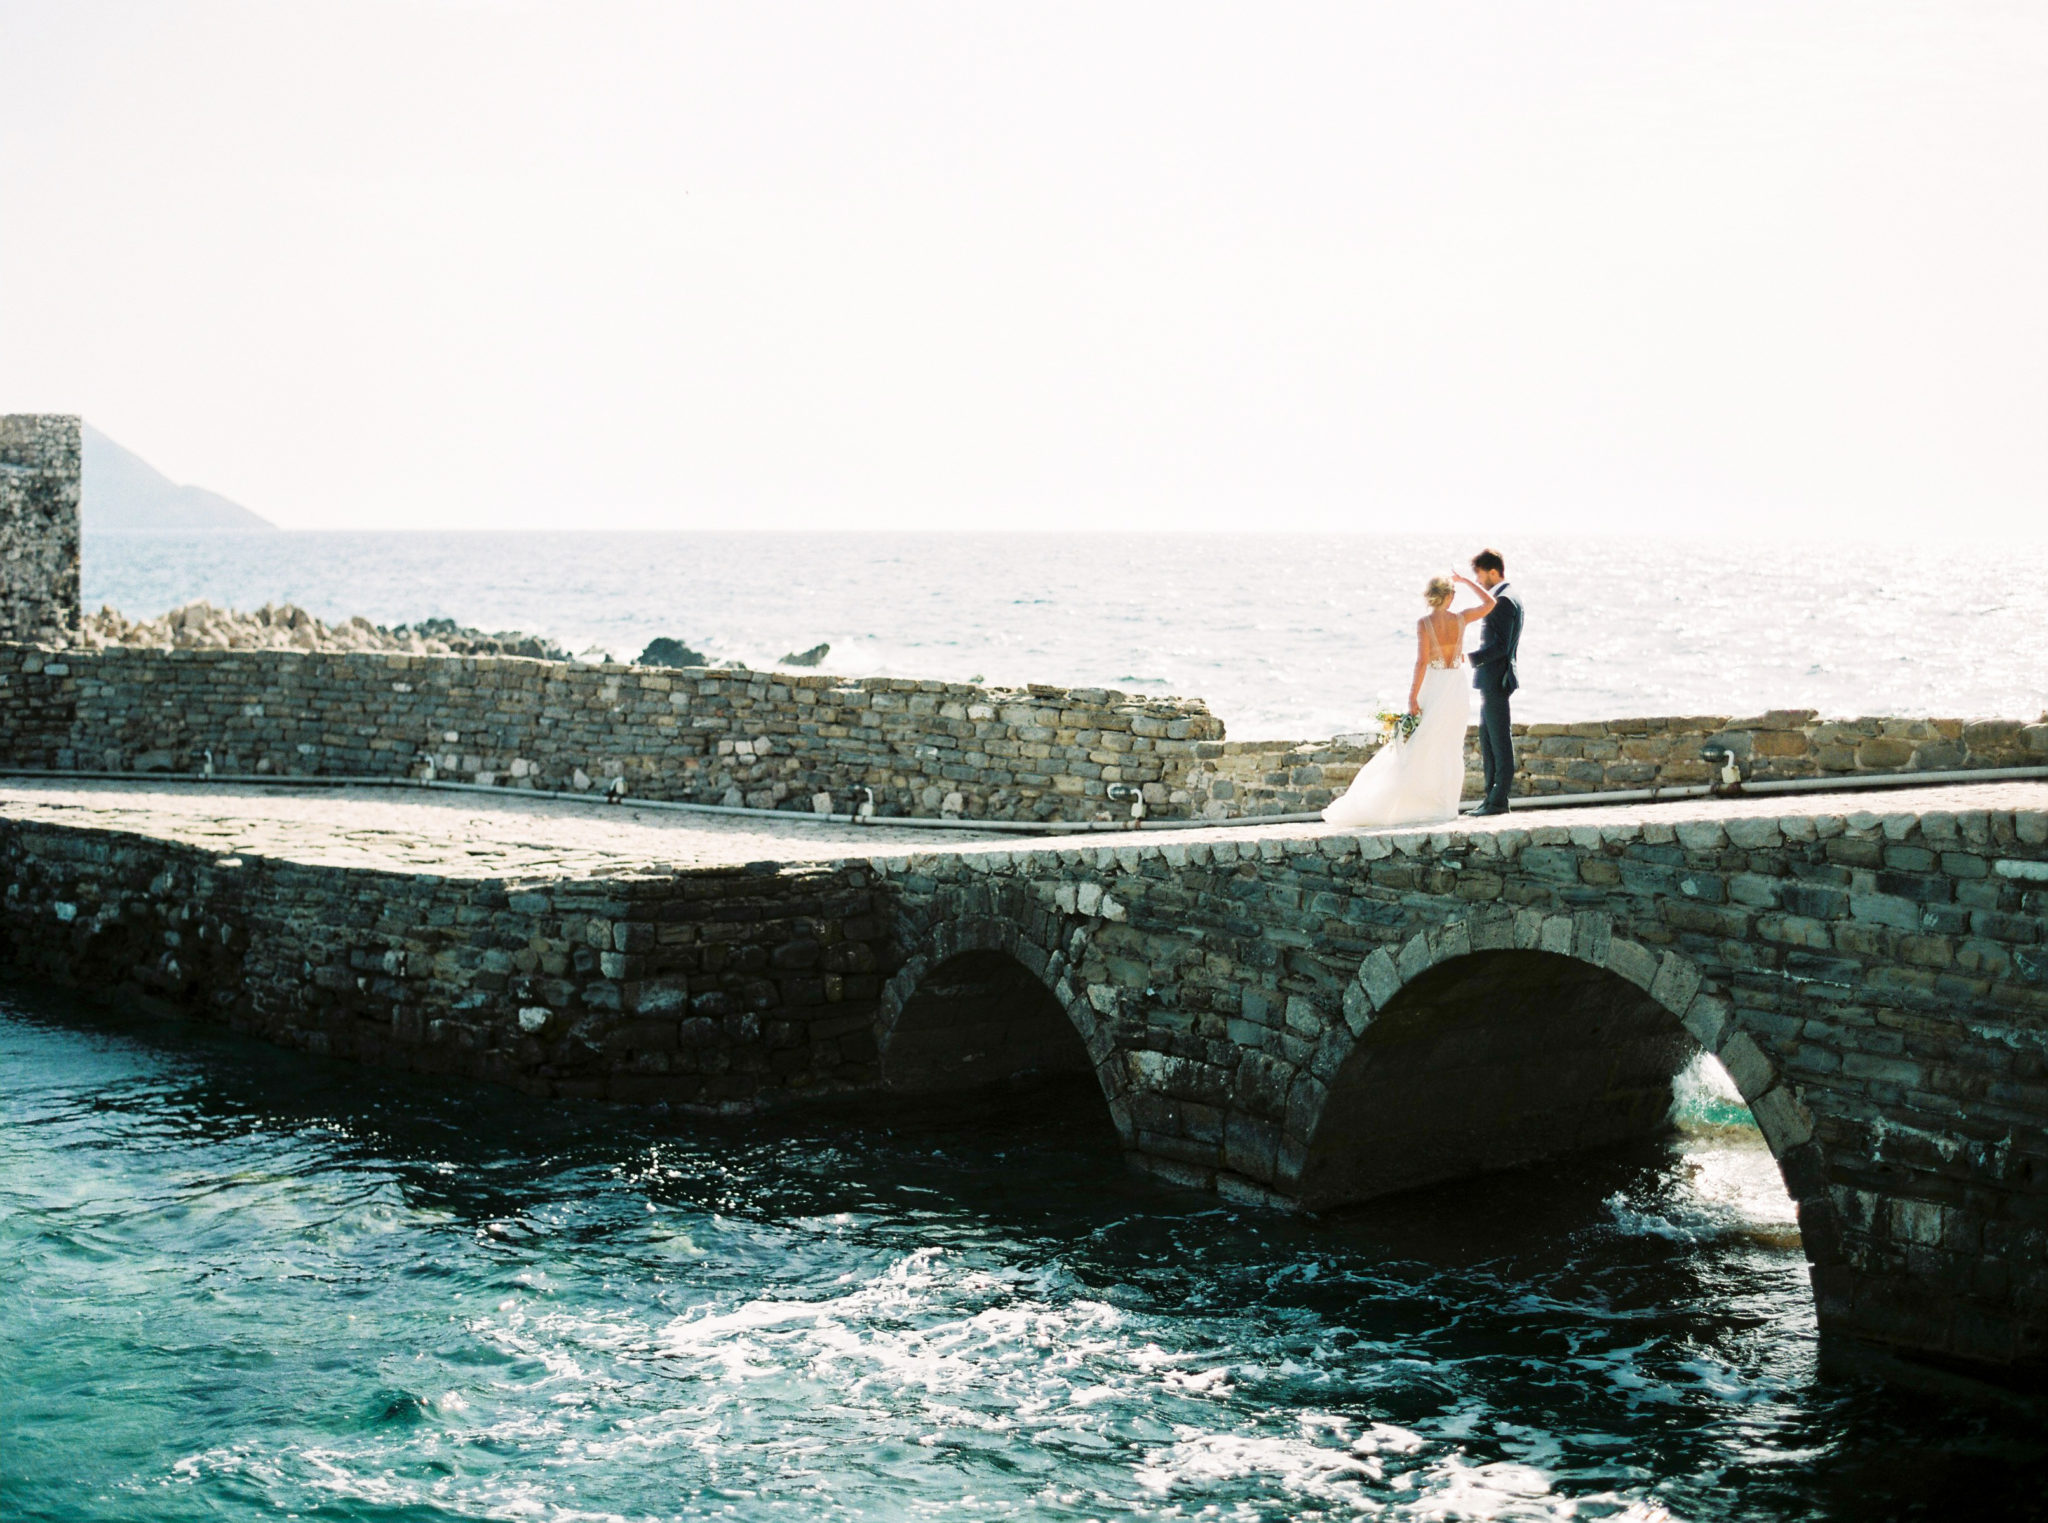 santorini wedding photographer, greece wedding photographer, elopement photographer greece